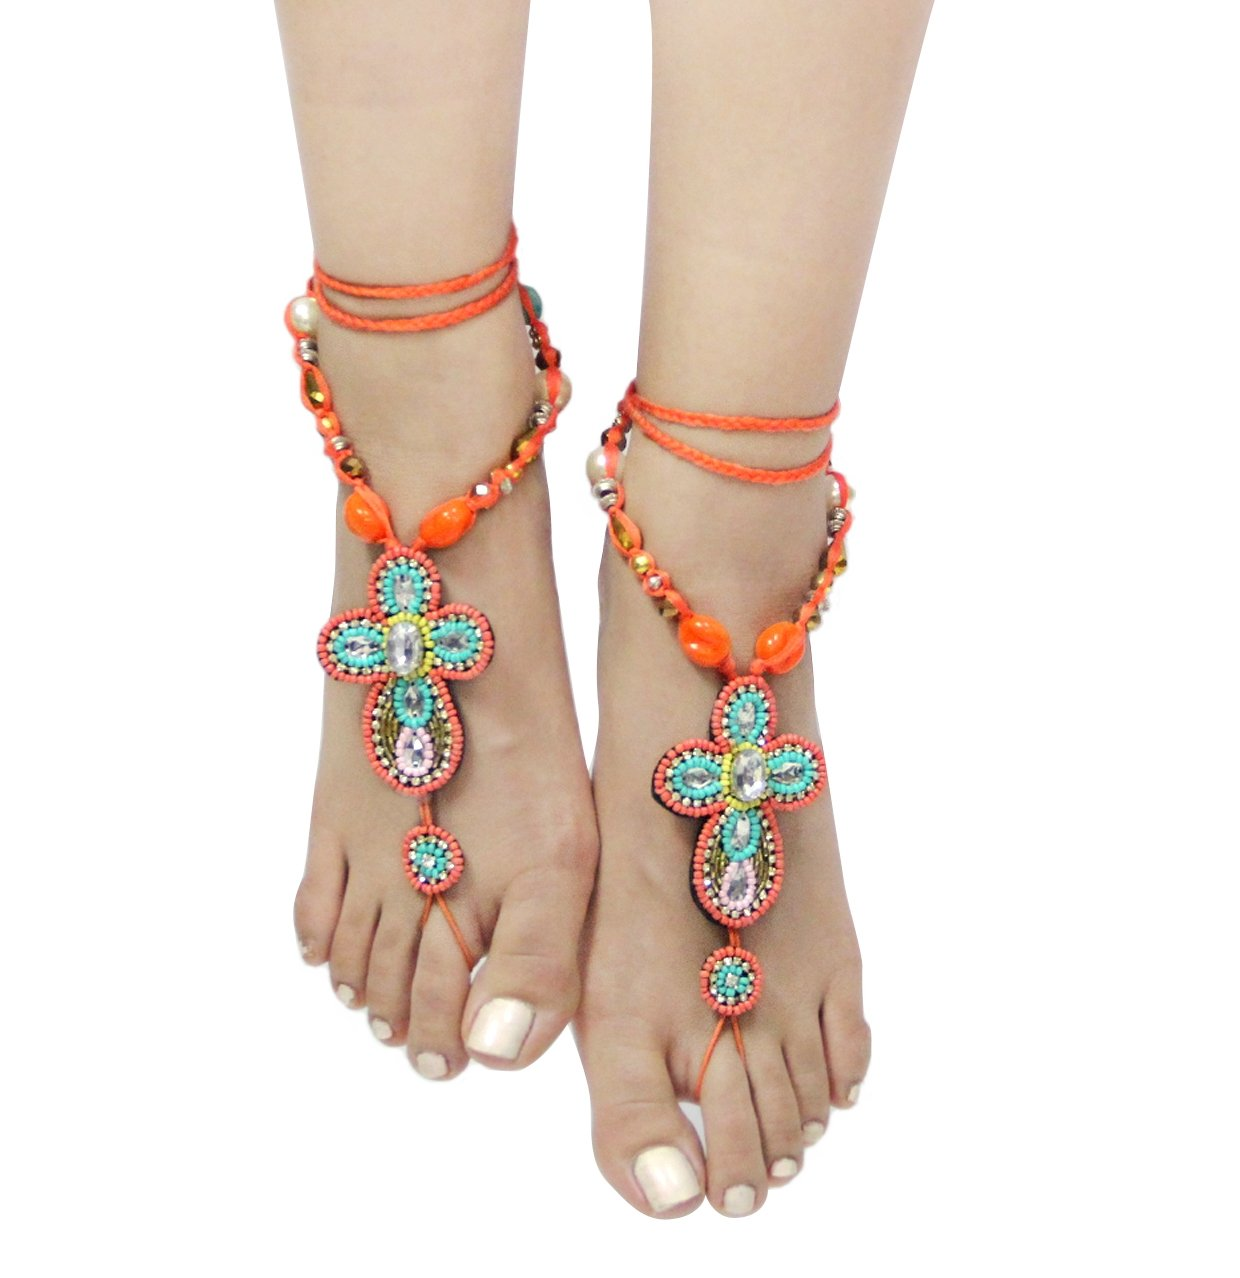 Bohemian Style Seed Bead Barefoot Sandals (Sold As Pair)